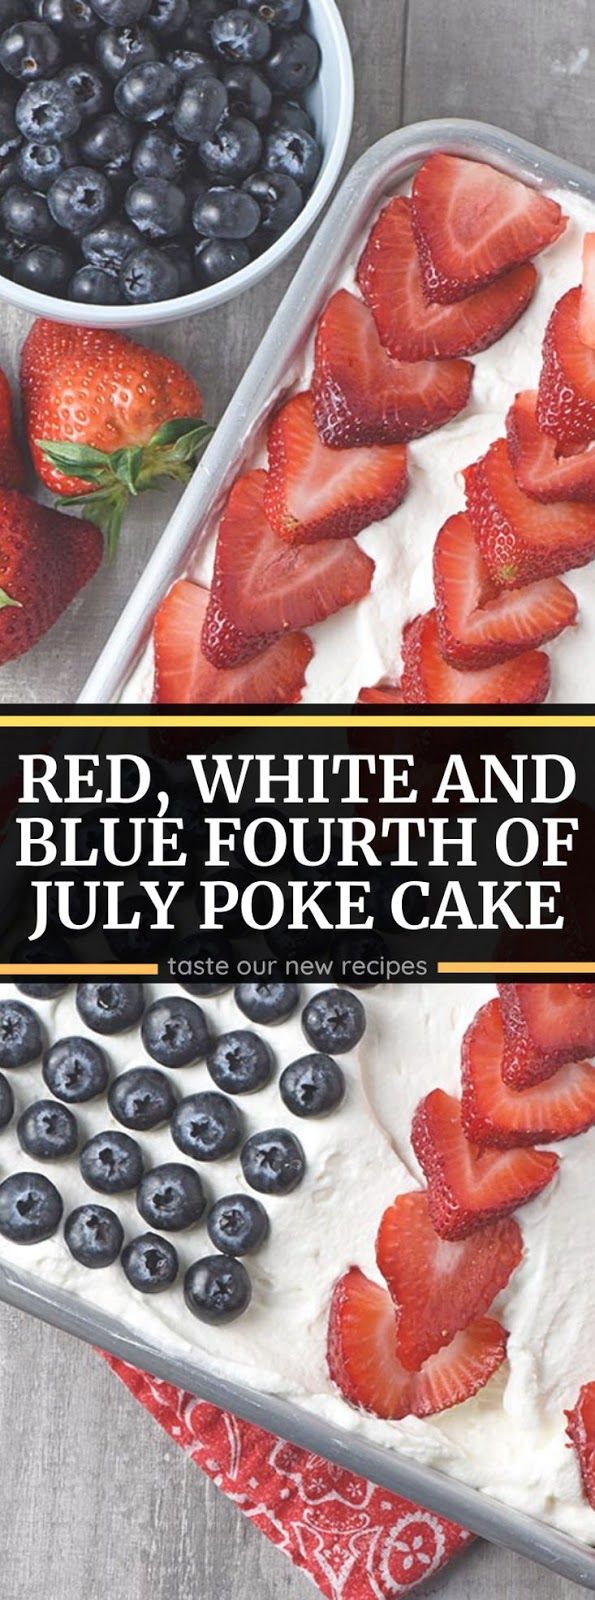 Red, White and Blue Fourth of July Poke Cake